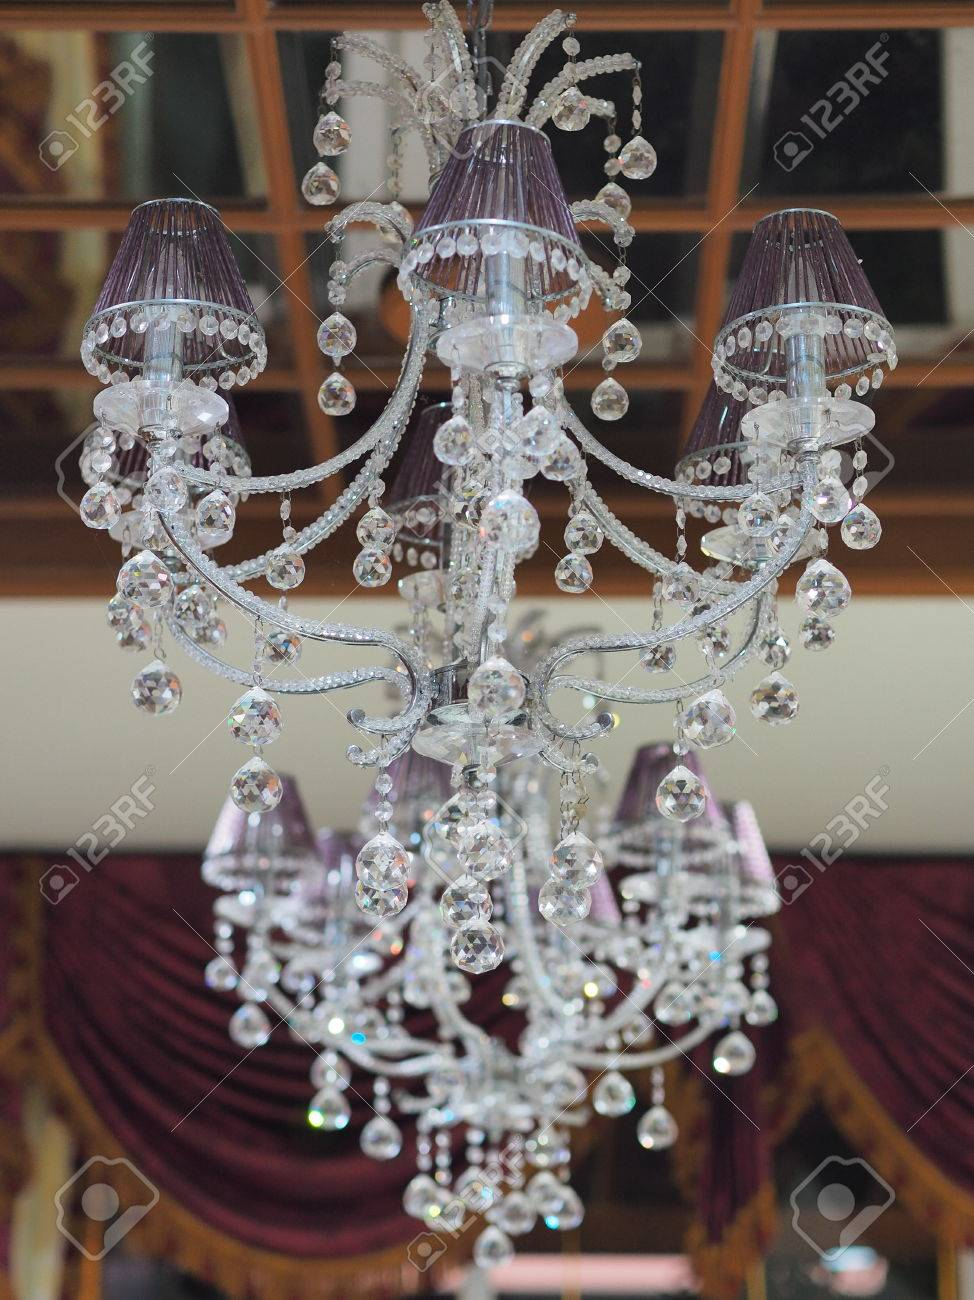 Bed chandelier crystal decorate glass home house housen indoor bed chandelier crystal decorate glass home house housen indoor lamp modern outdoor stock photo 50830991 aloadofball Image collections